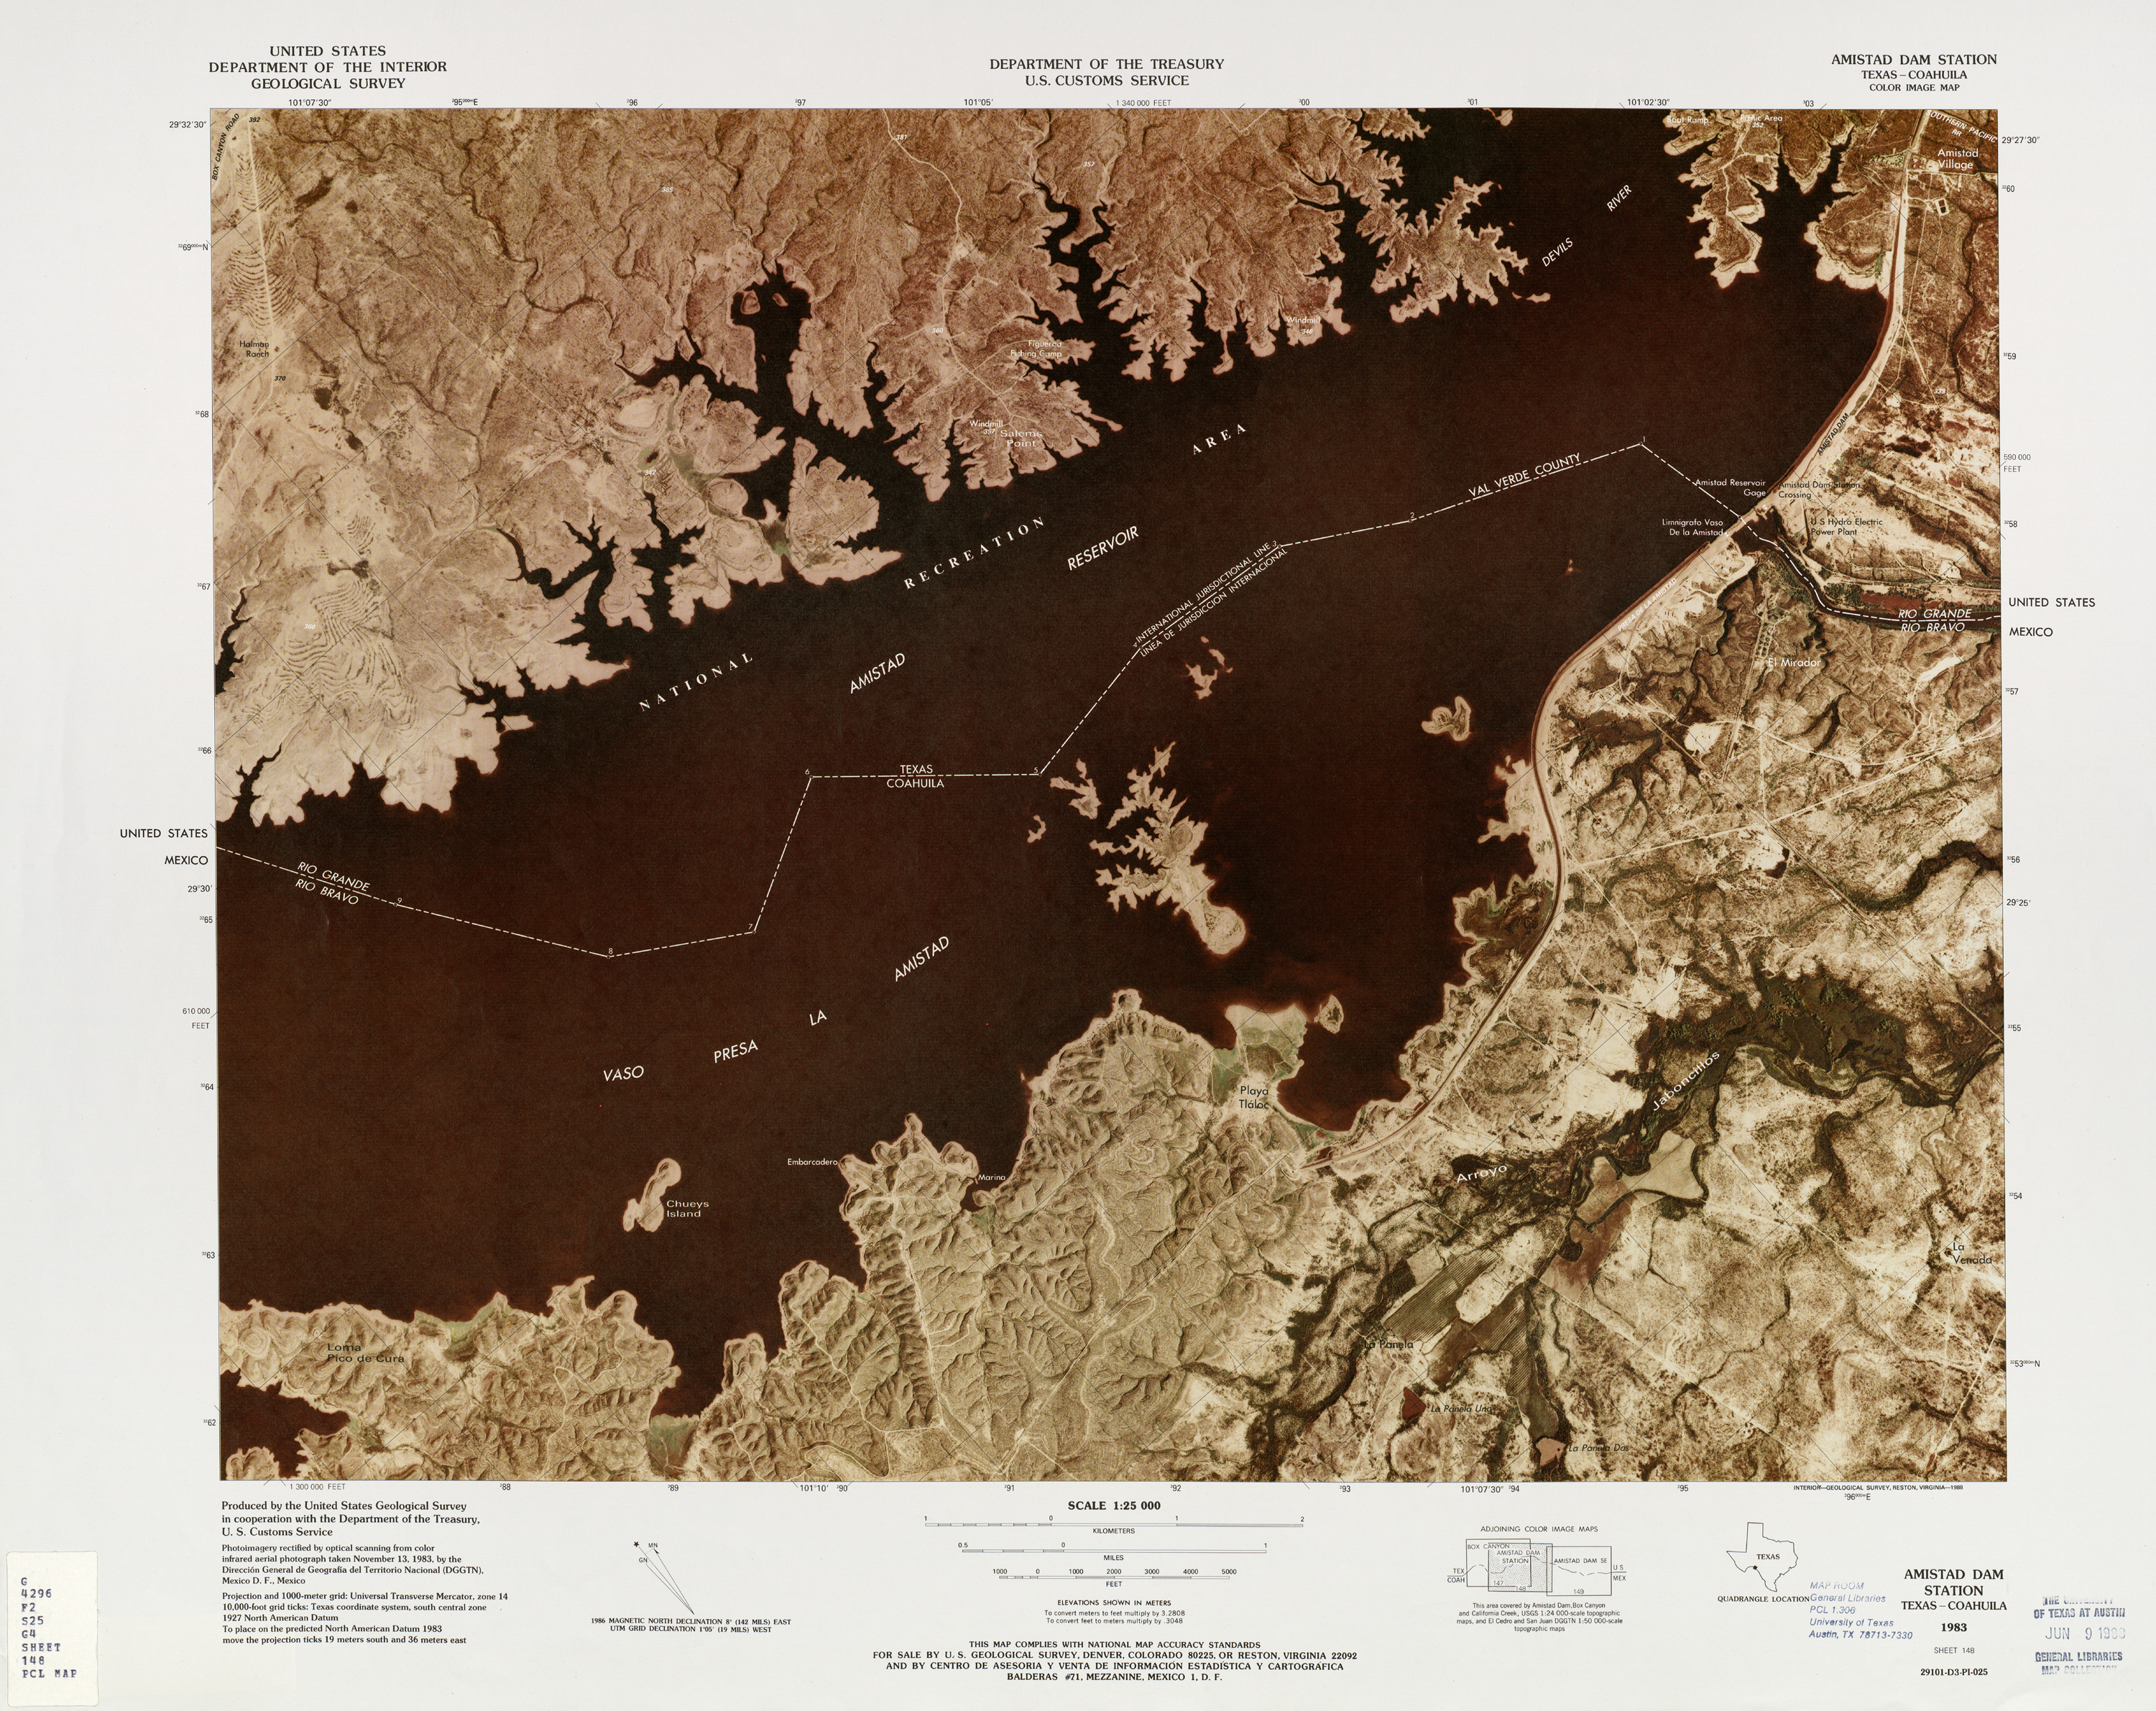 United States-Mexico Border Map, Amistad Dam Station